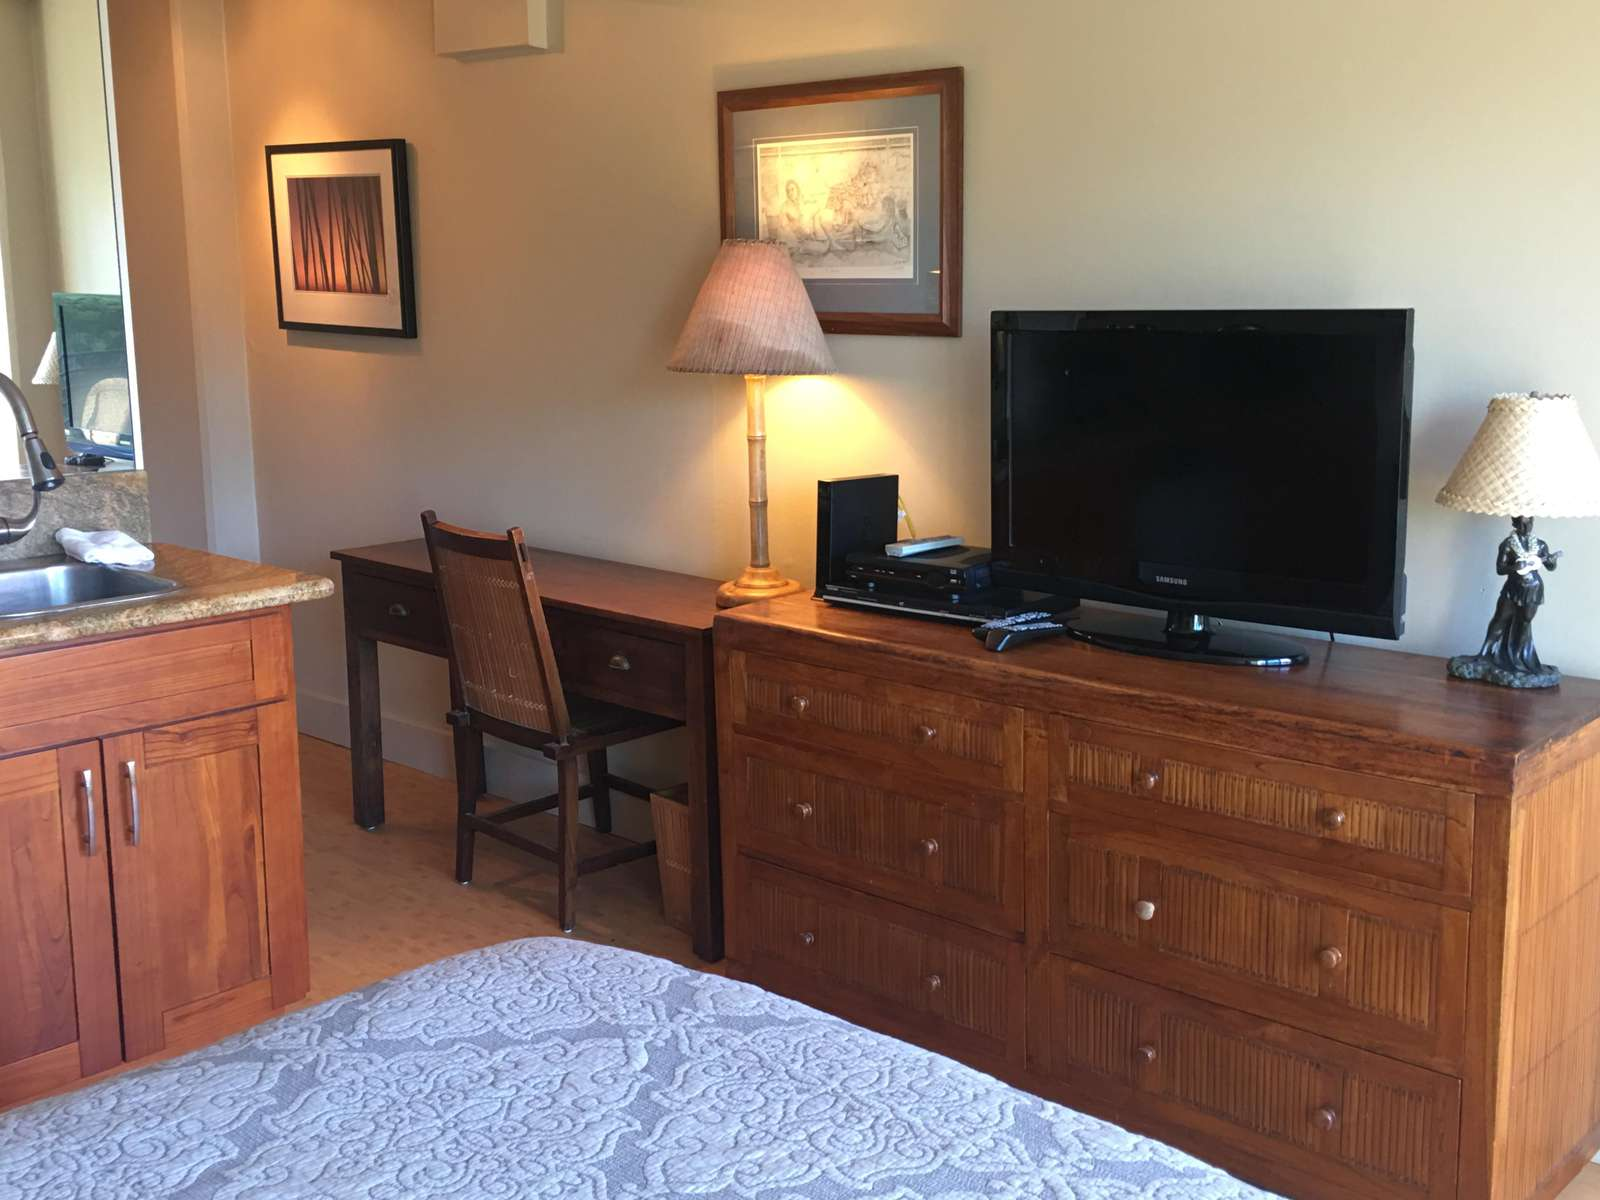 HD TV with cable included - Plus FREE WiFi